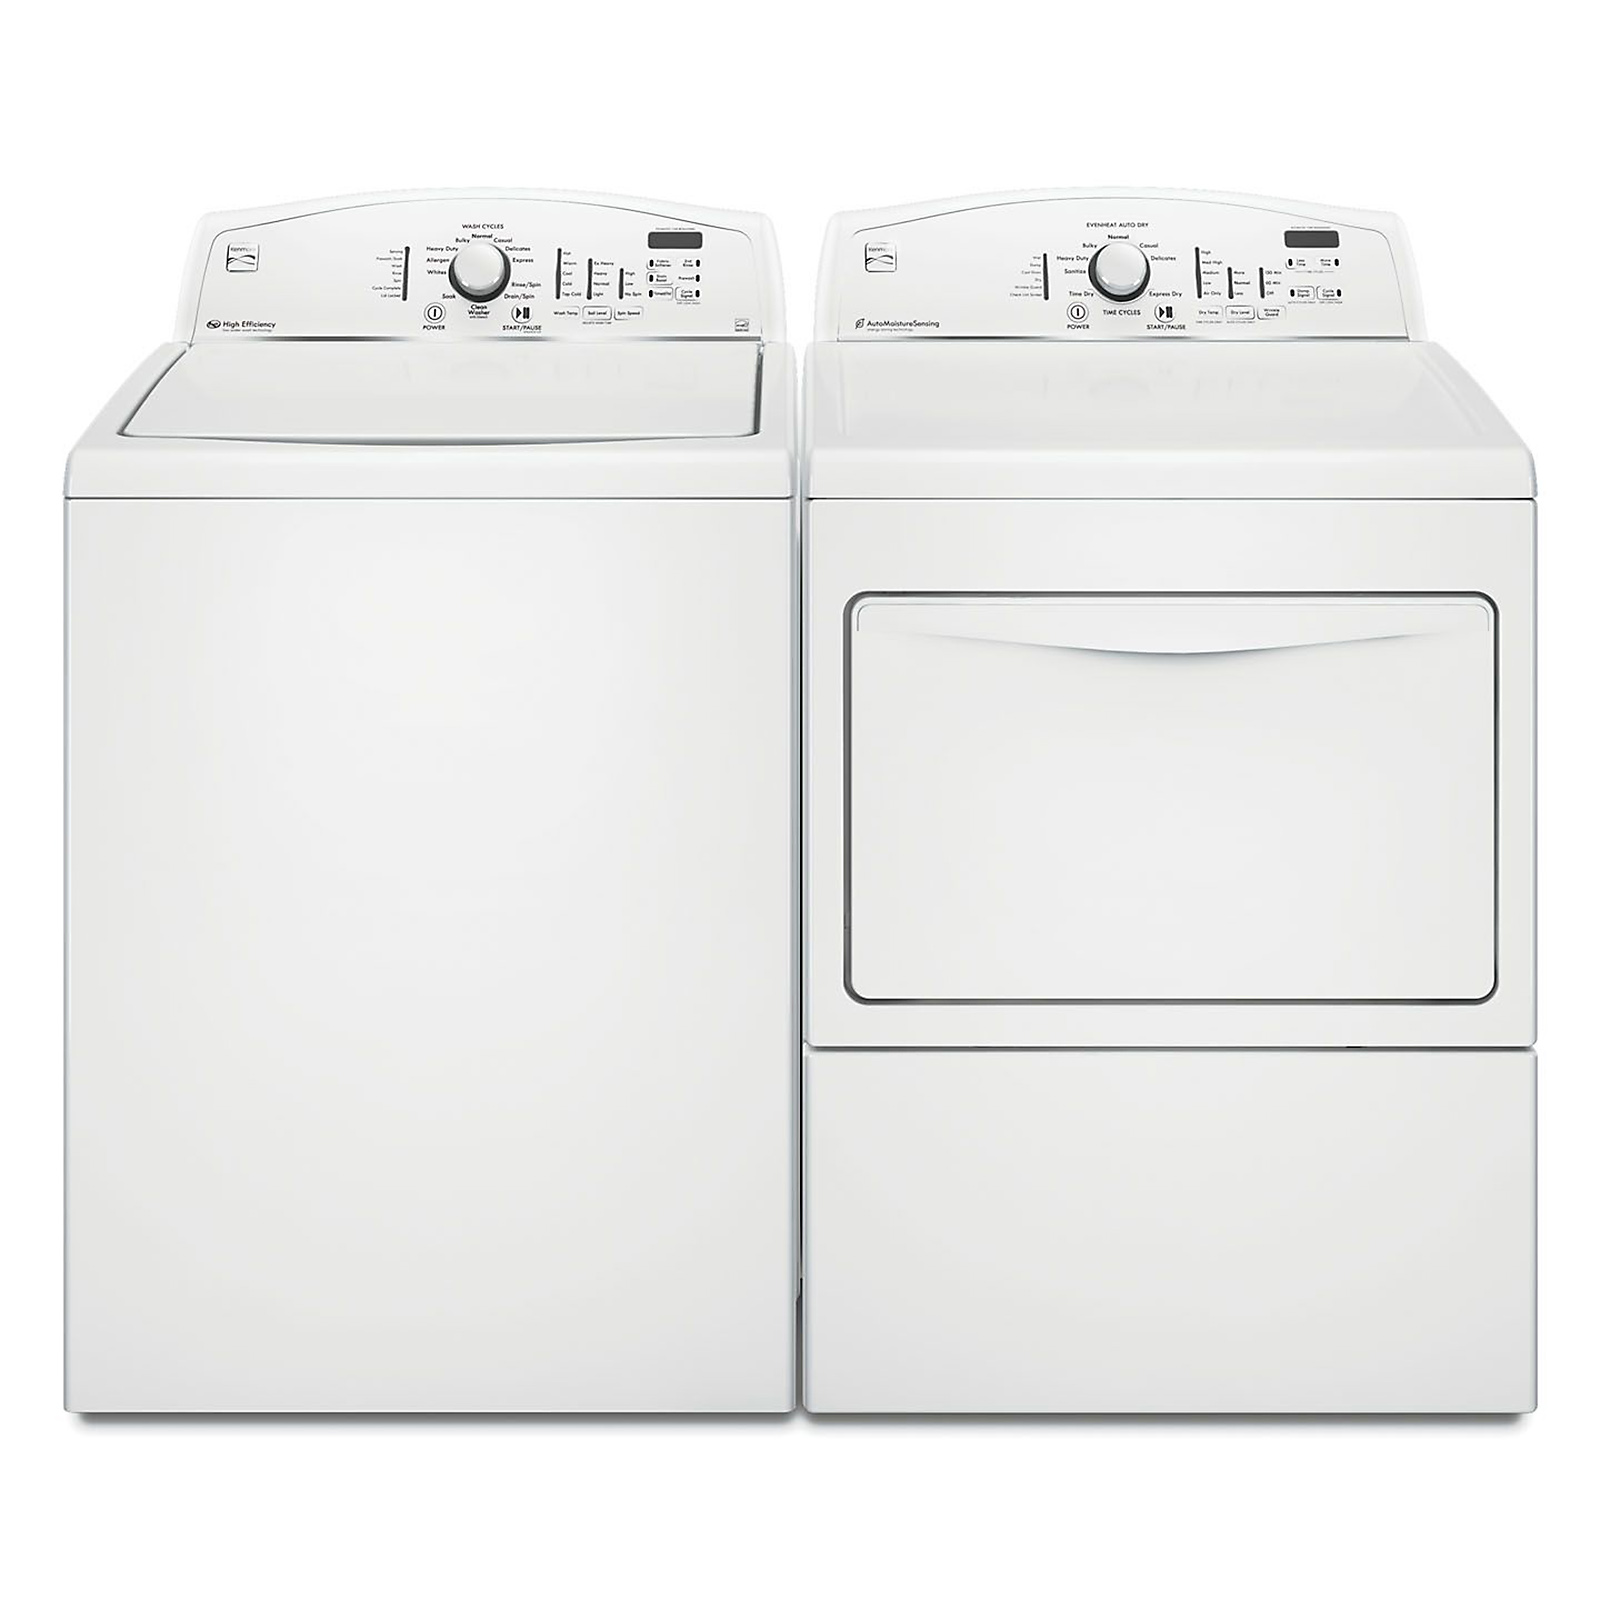 Kenmore 7.5 cu. ft. Electric Dryer - White